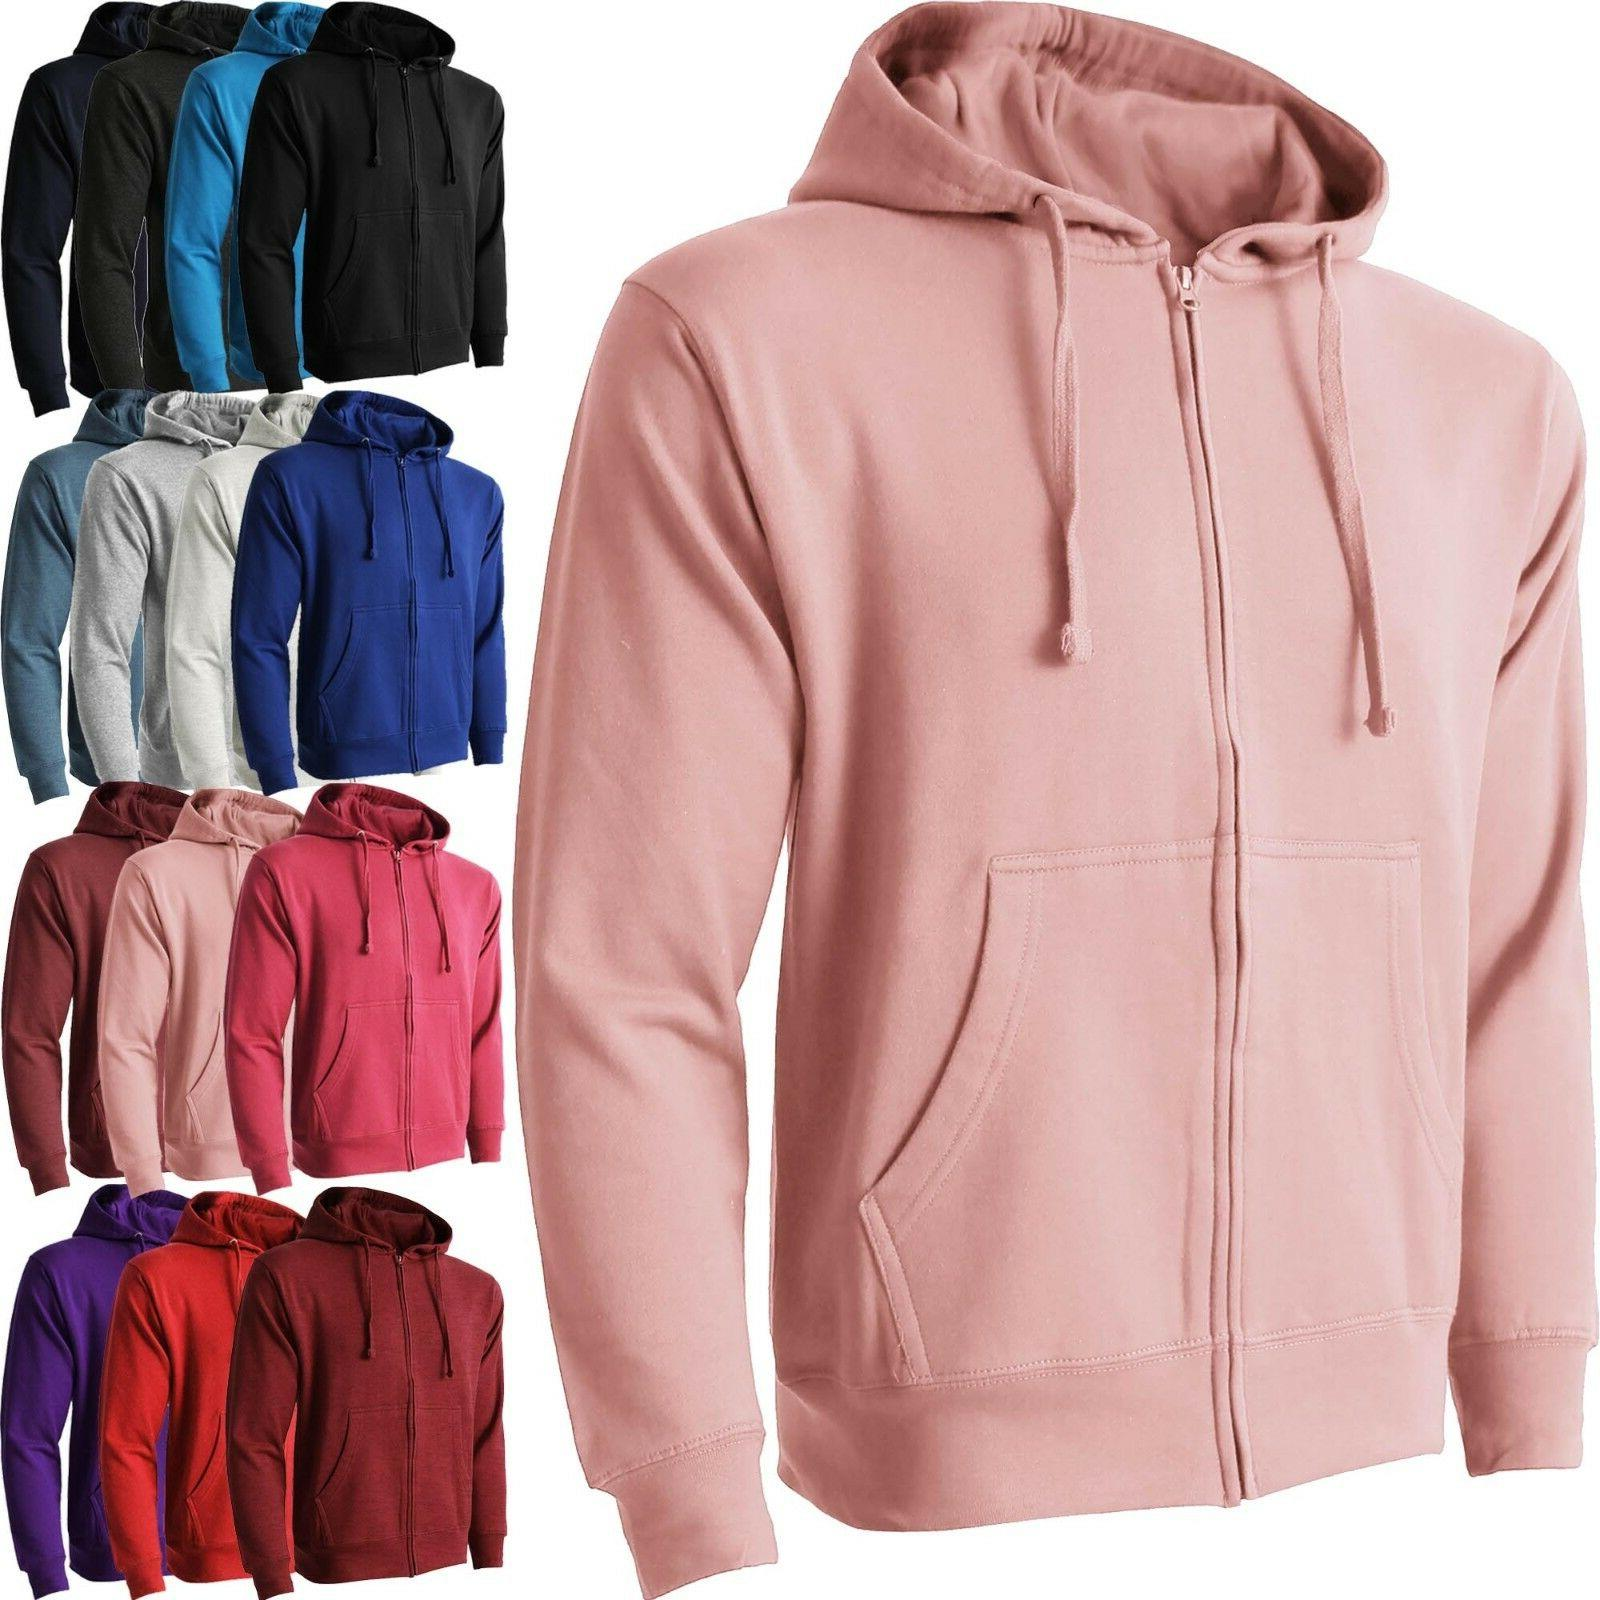 mens zip up hoodie jacket fleece pocket